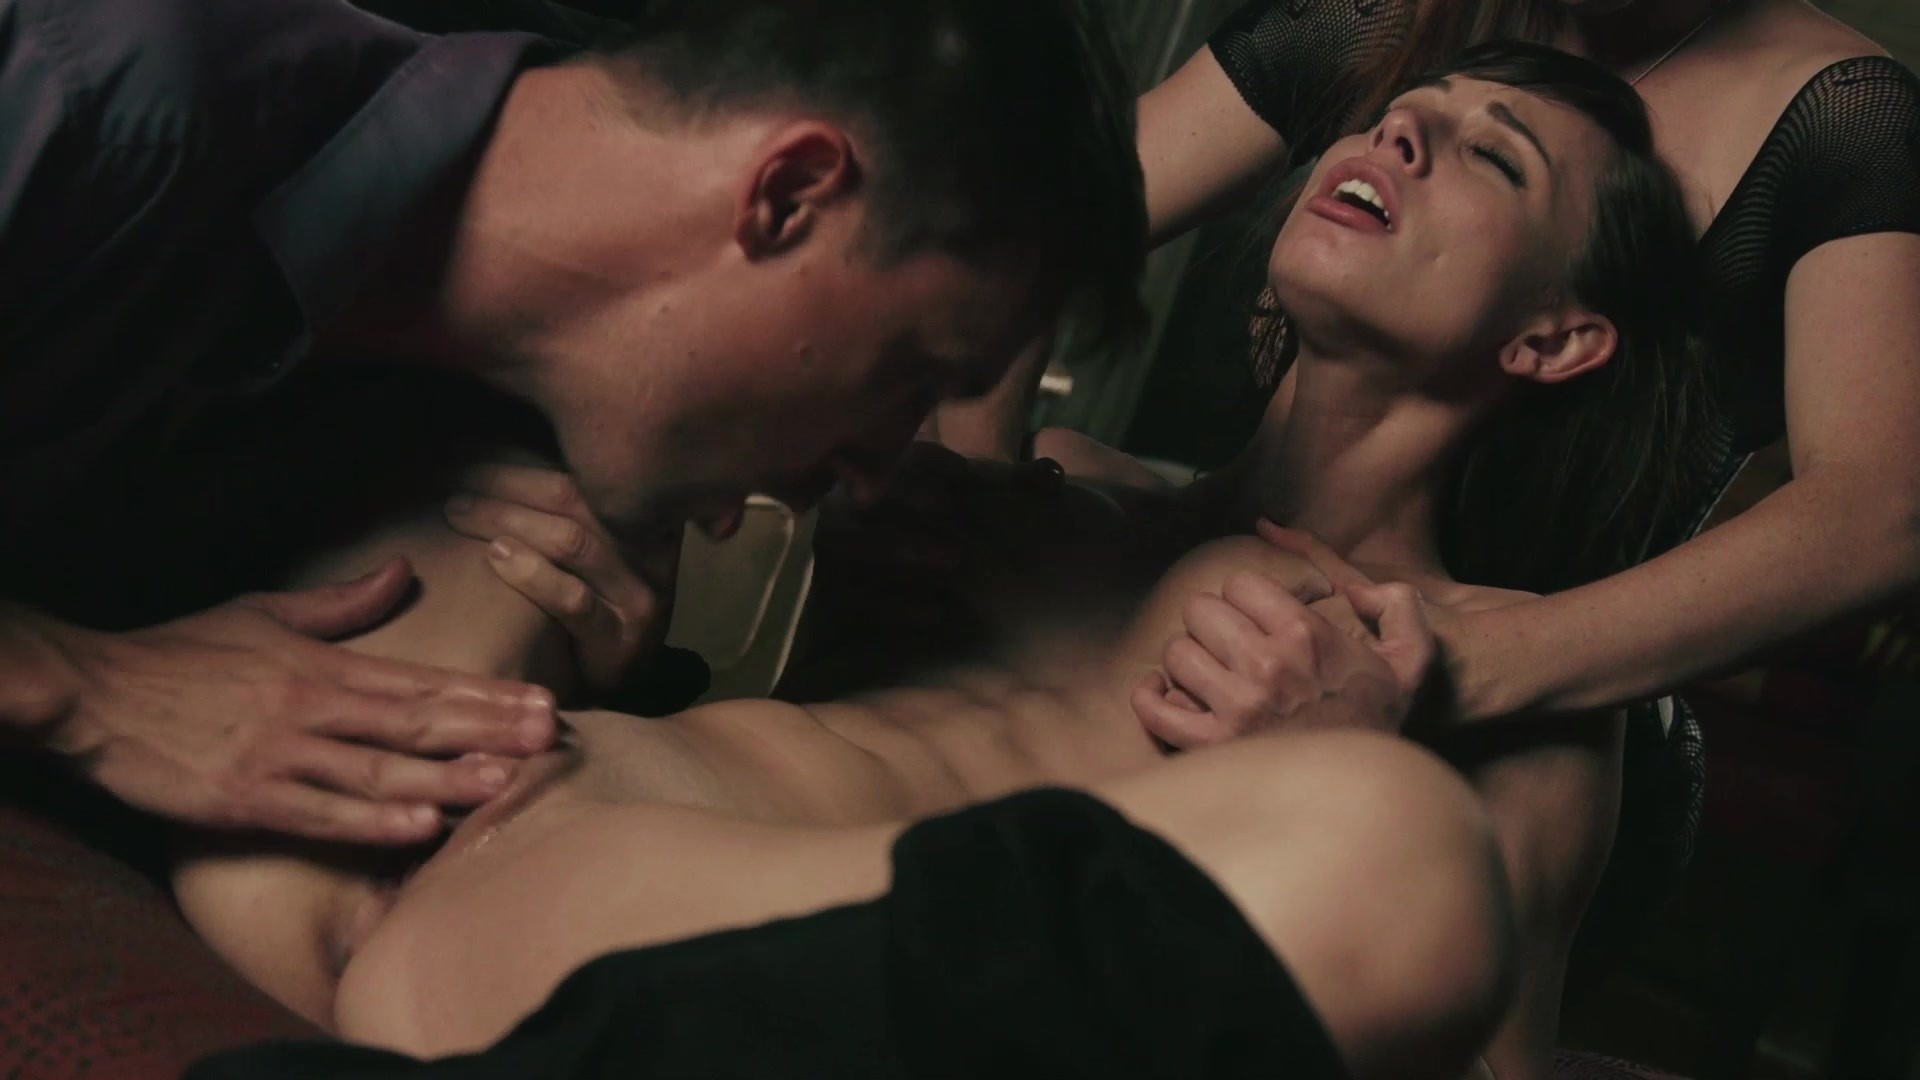 Scene with Richie Calhoun, Penny Pax and Aidra Fox - image 9 out of 20